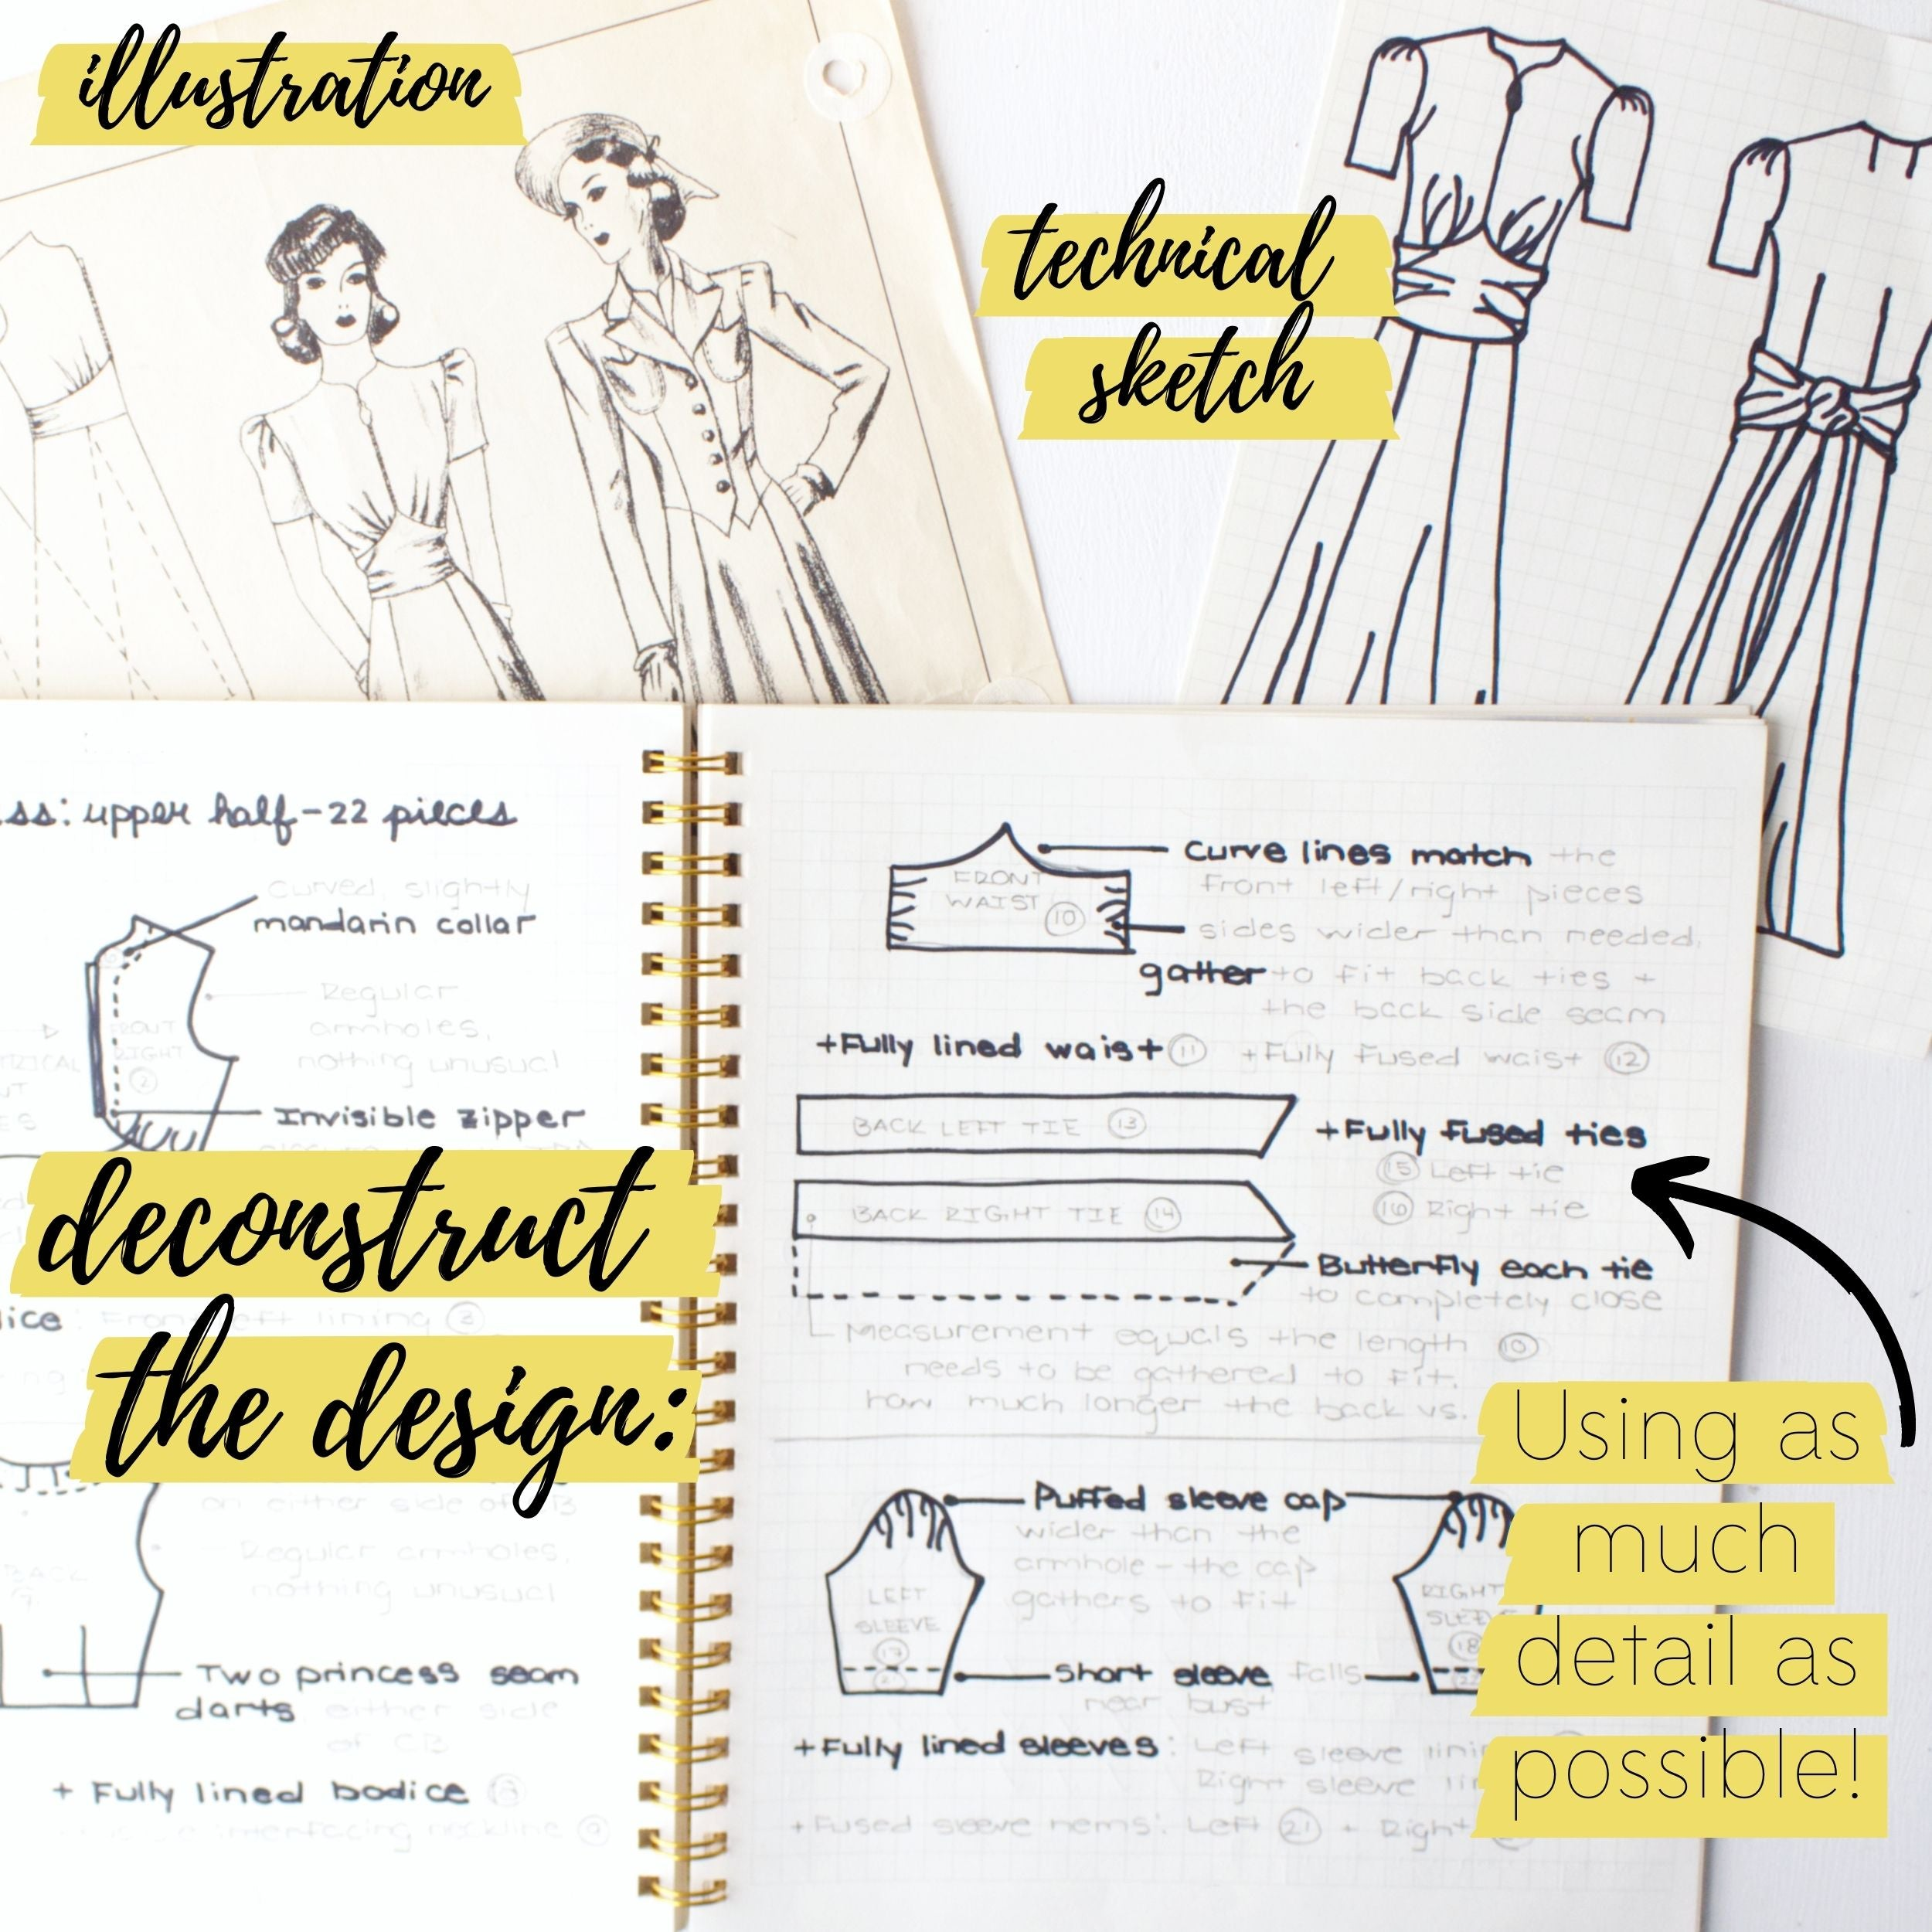 How to bring a vintage sewing pattern to life: Deconstruct the design